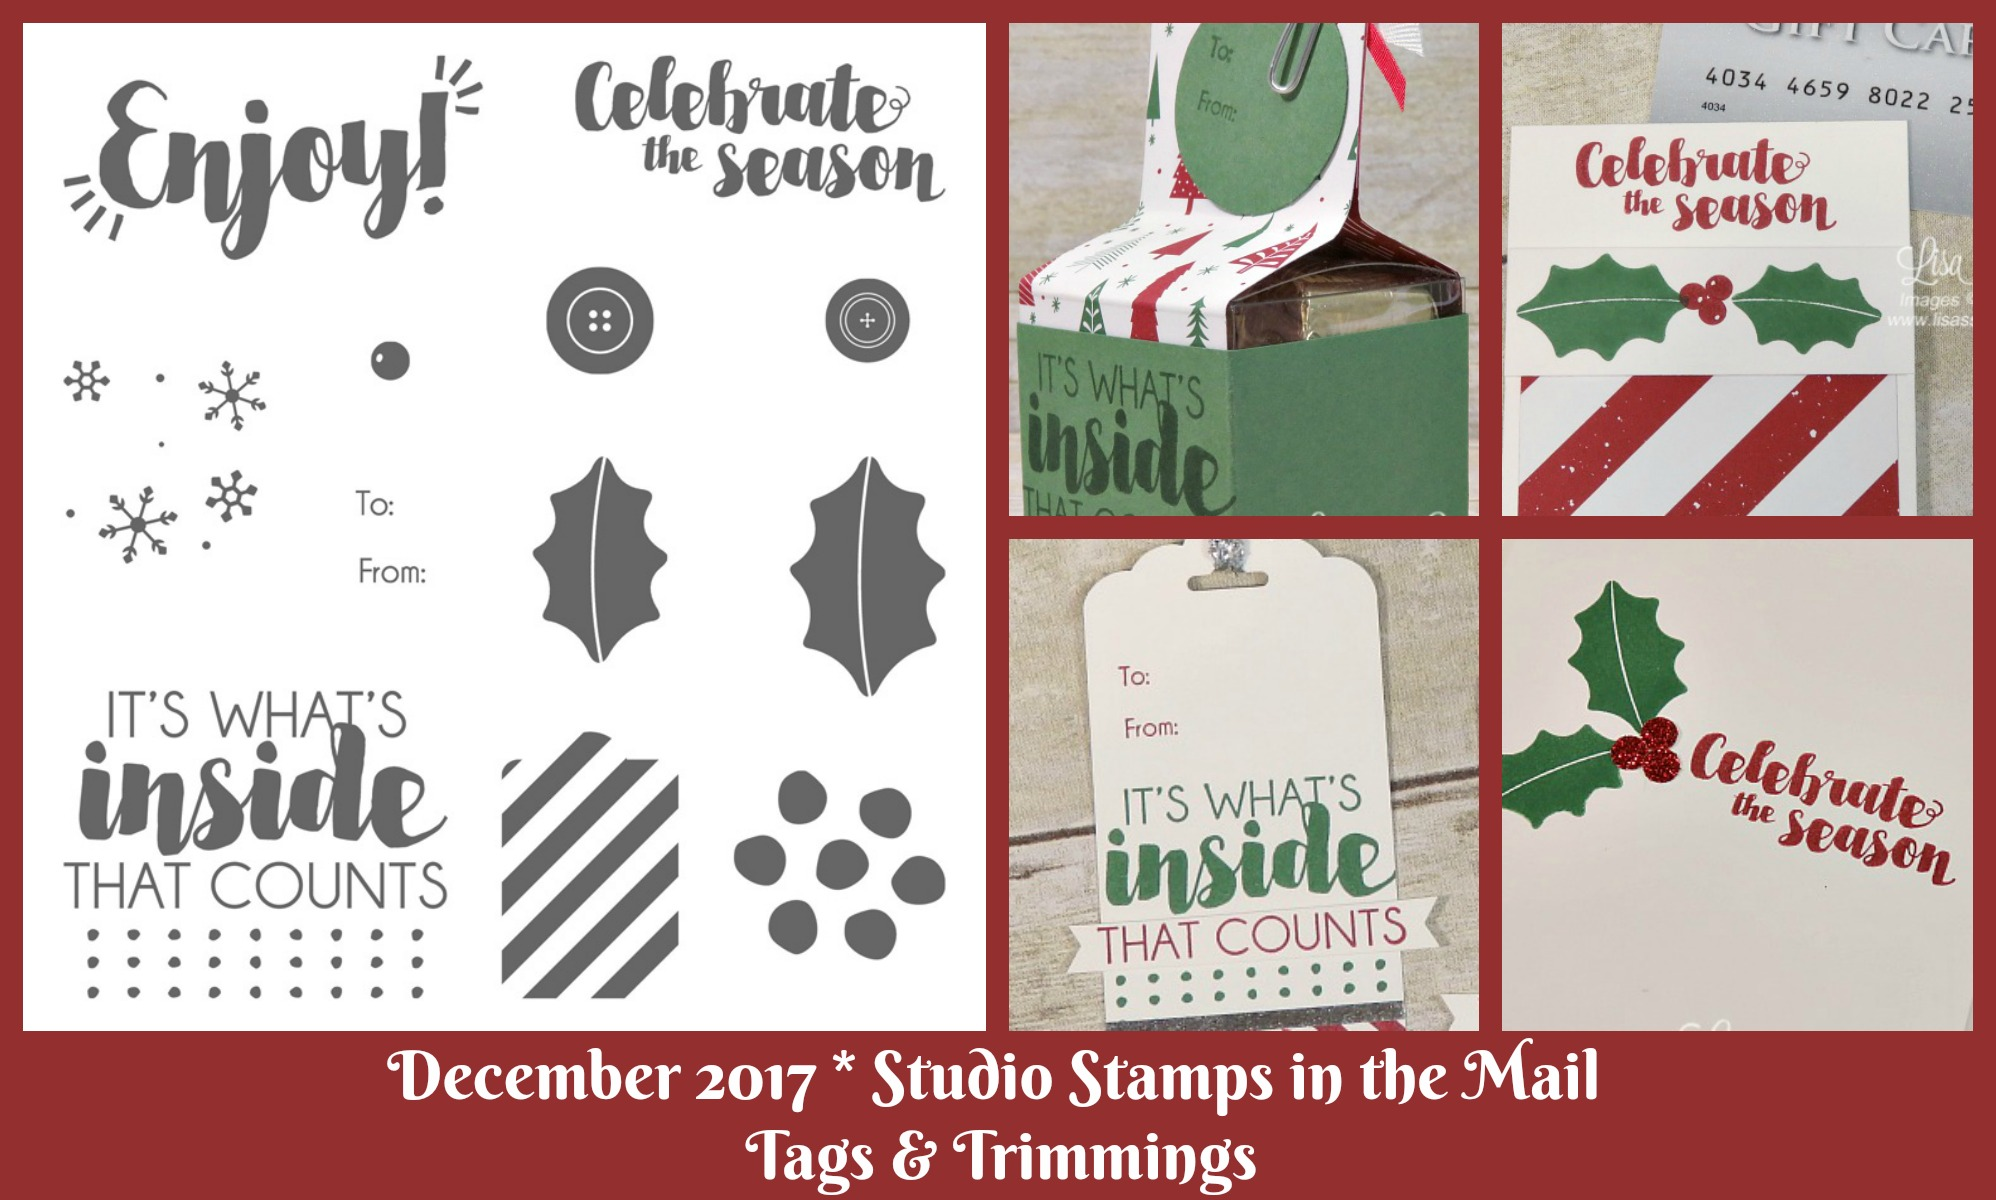 Introducing December's Studio Stamps in the Mail